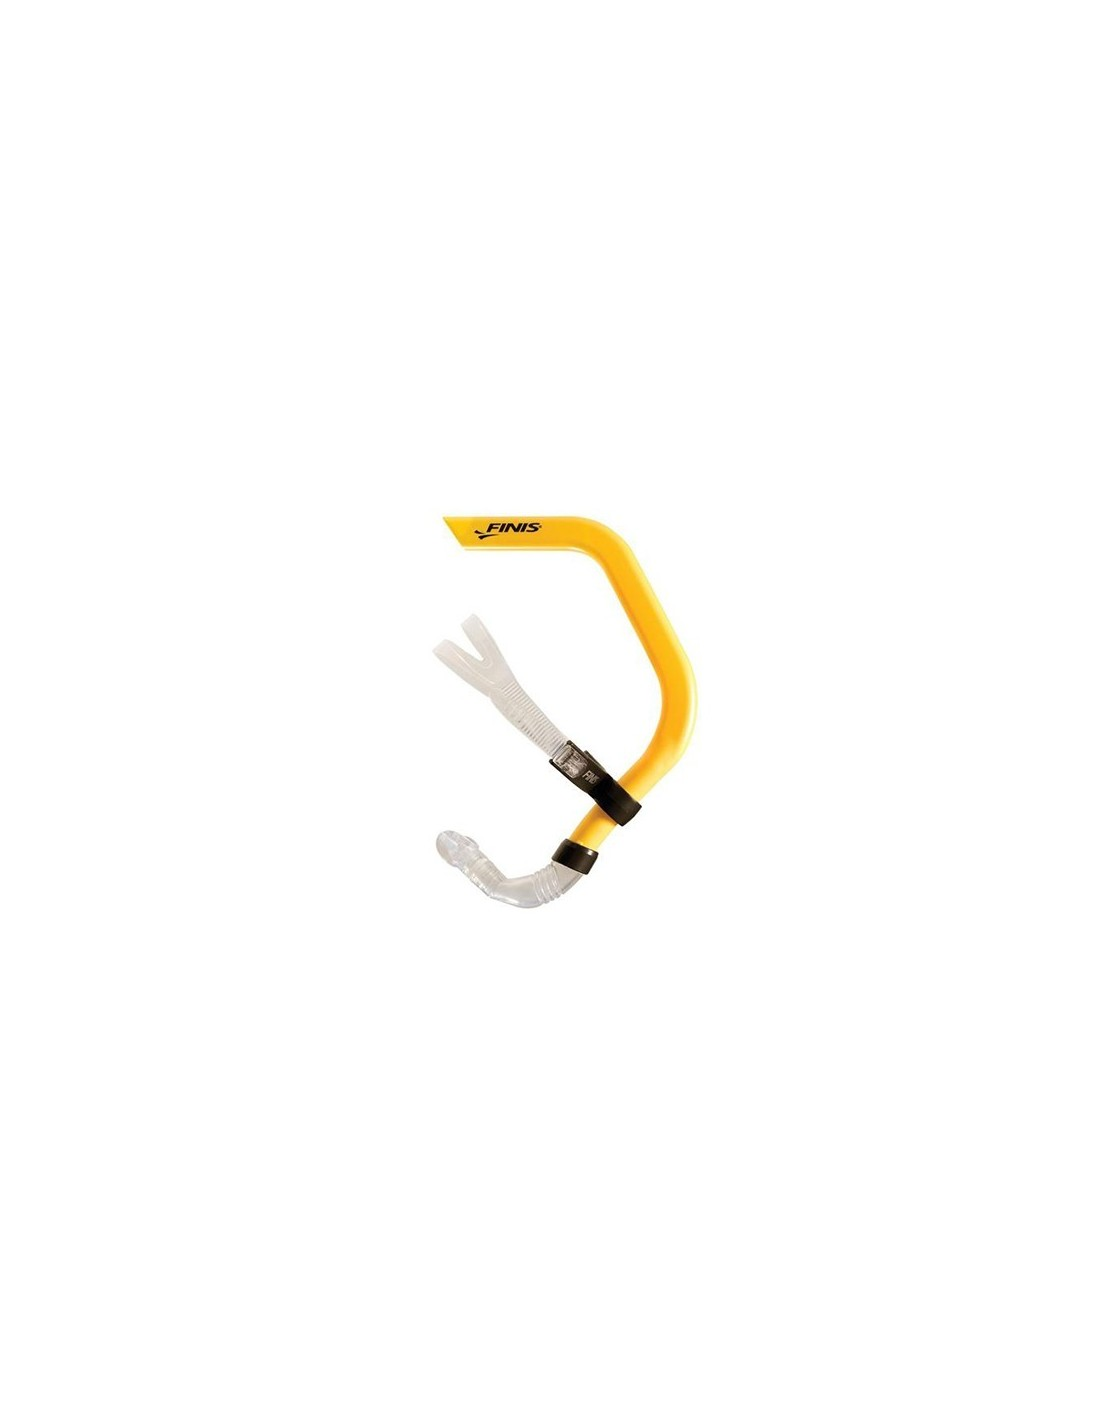 Cupon Freestyle Libre Tubo Frontal Finis Snorkel Adulto Freestyle